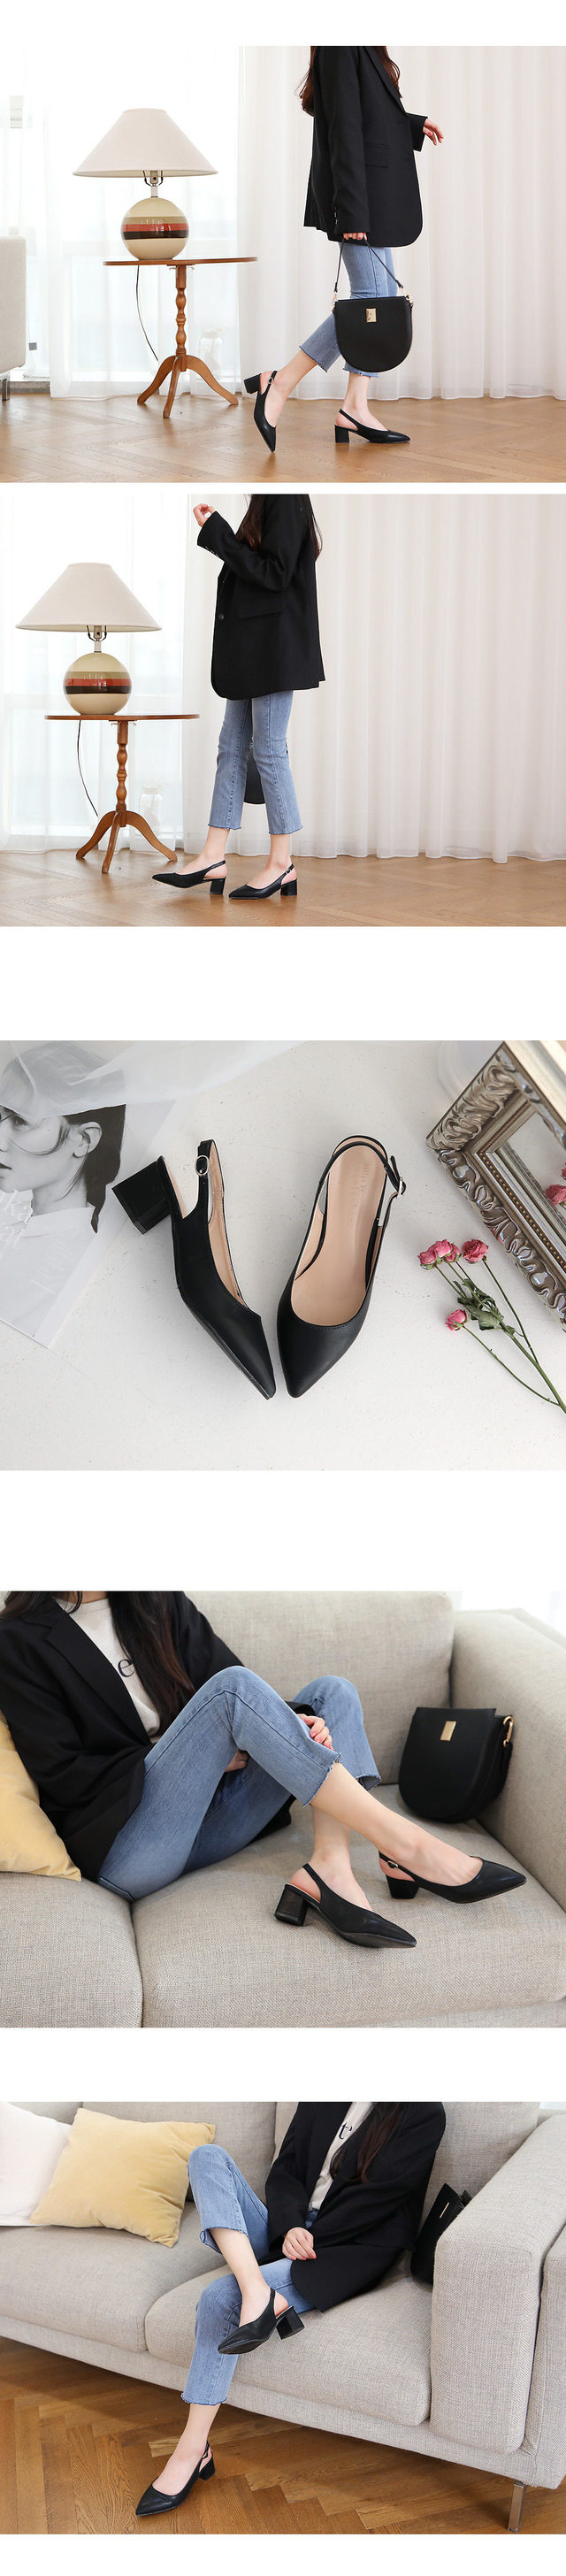 SNS specials third, confession slingback middle heel 5cm